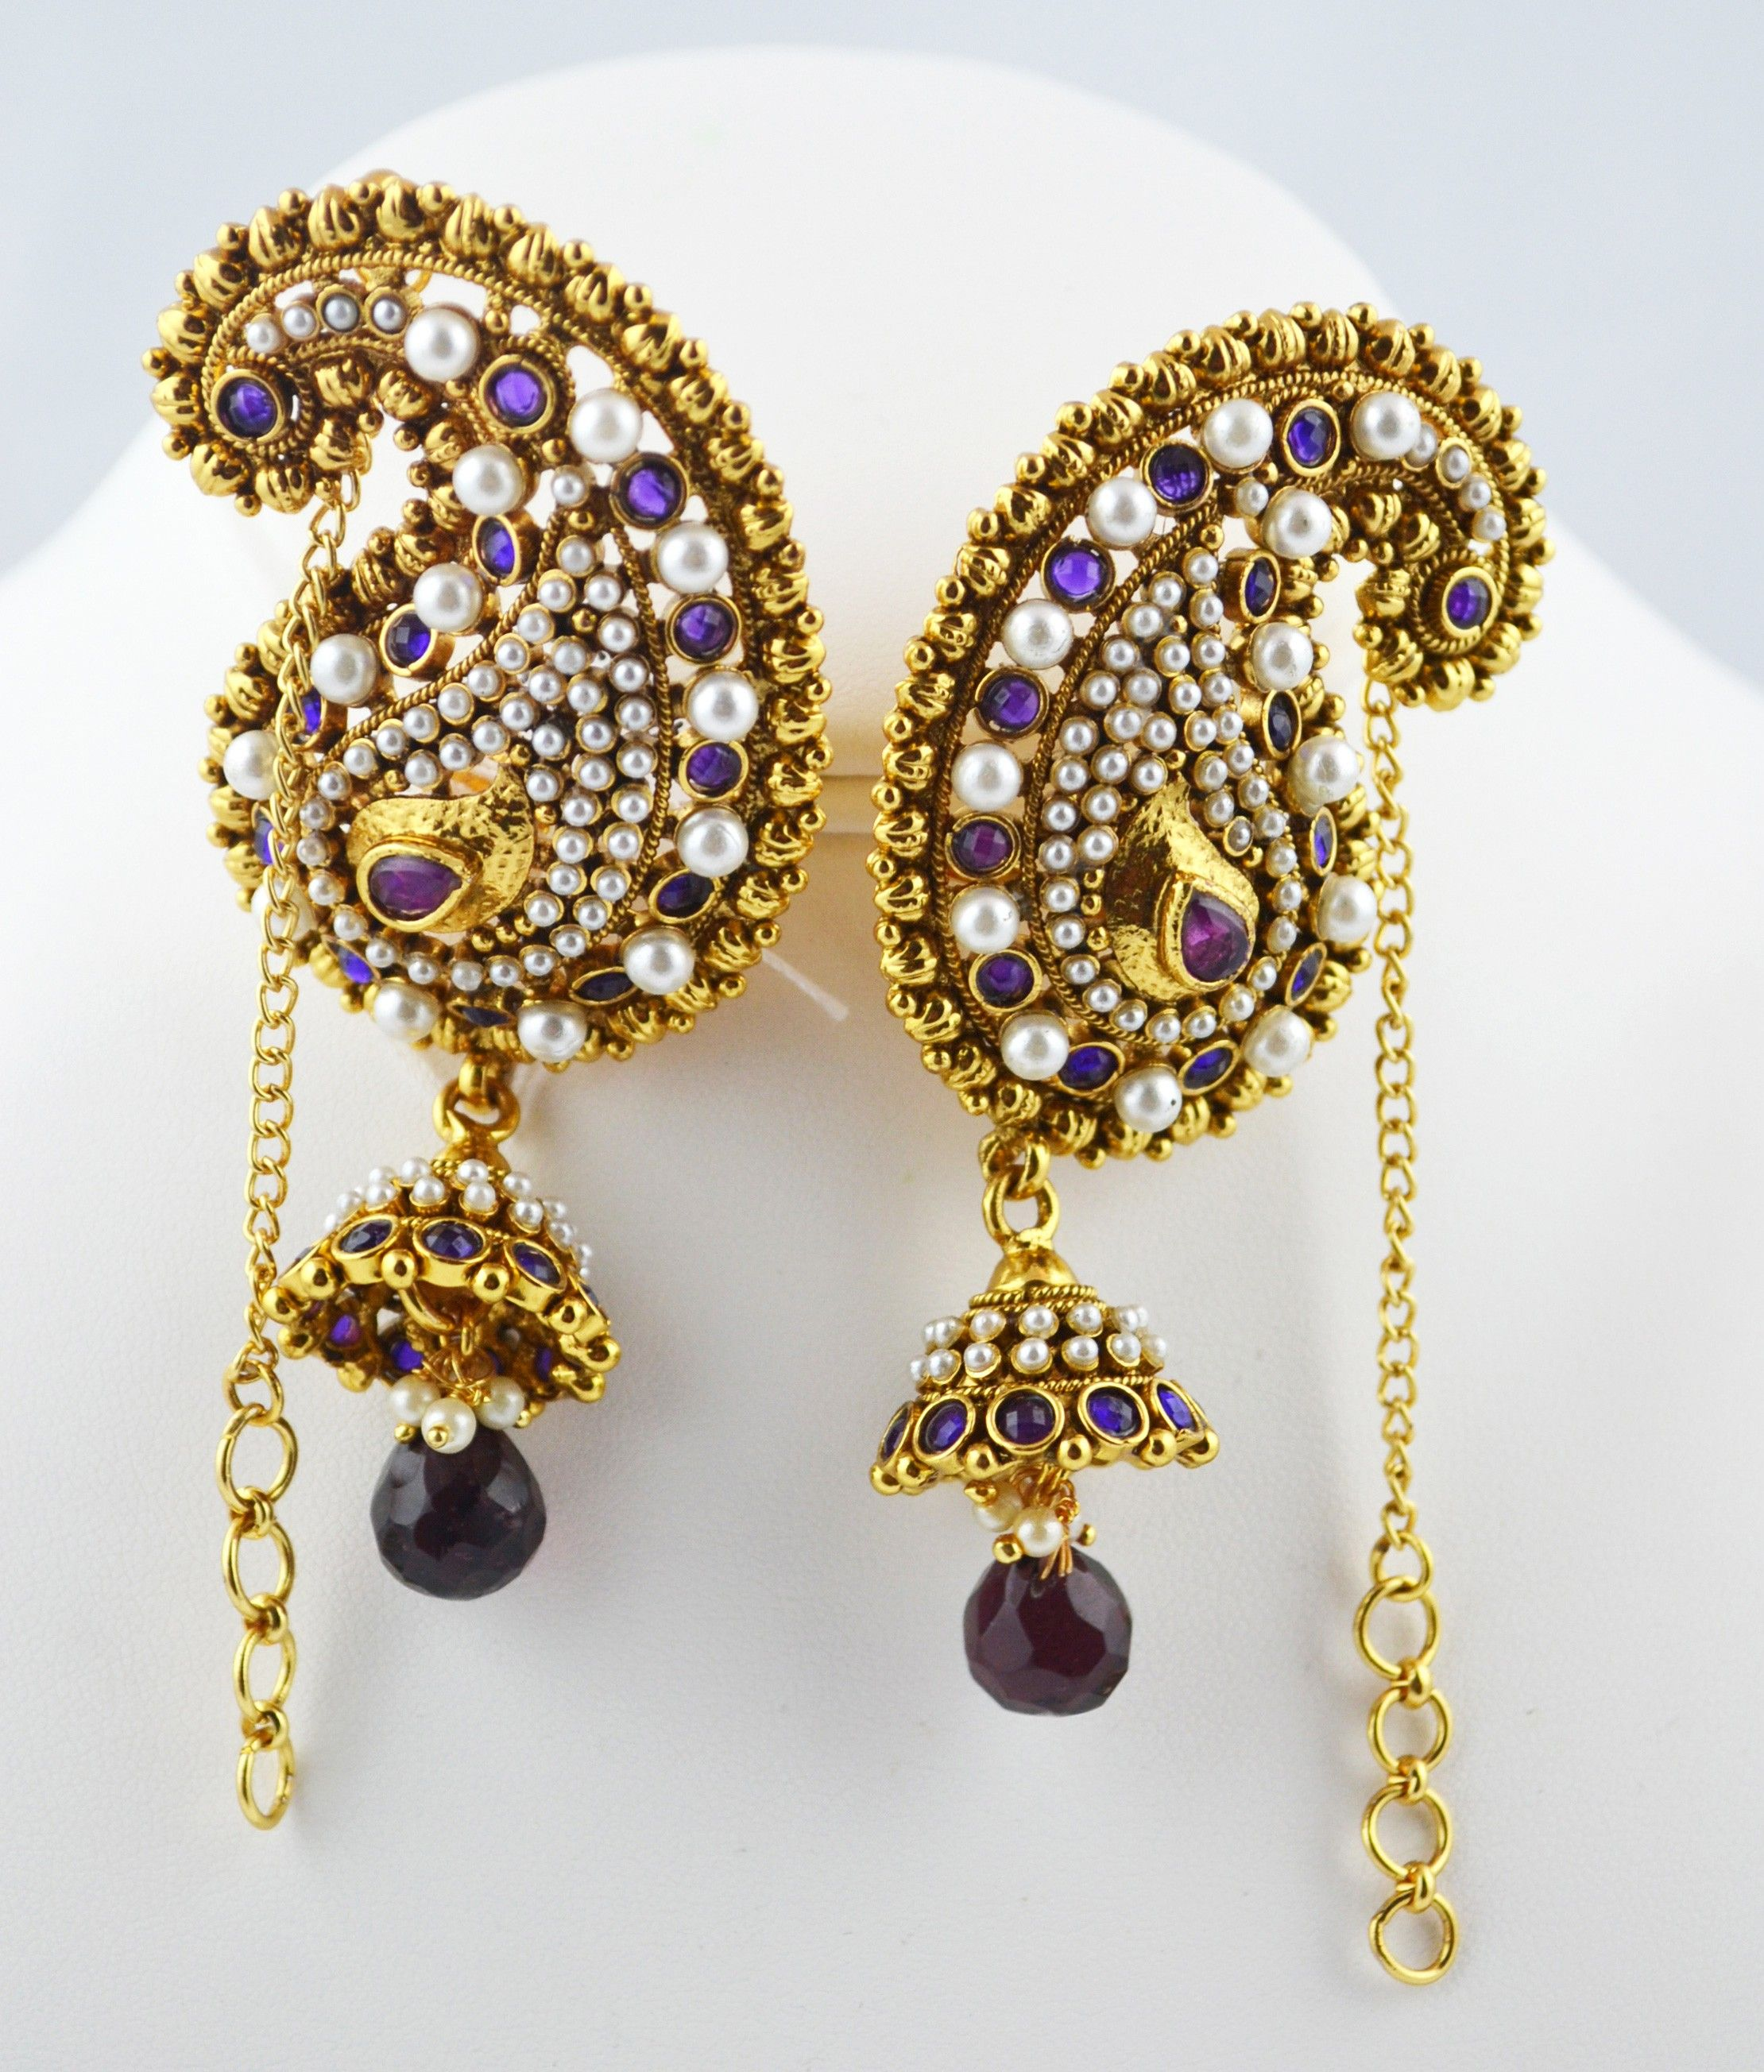 Indian Jewelry Store  Swasam: Full Ear Covering Red And Pearls   Earrings